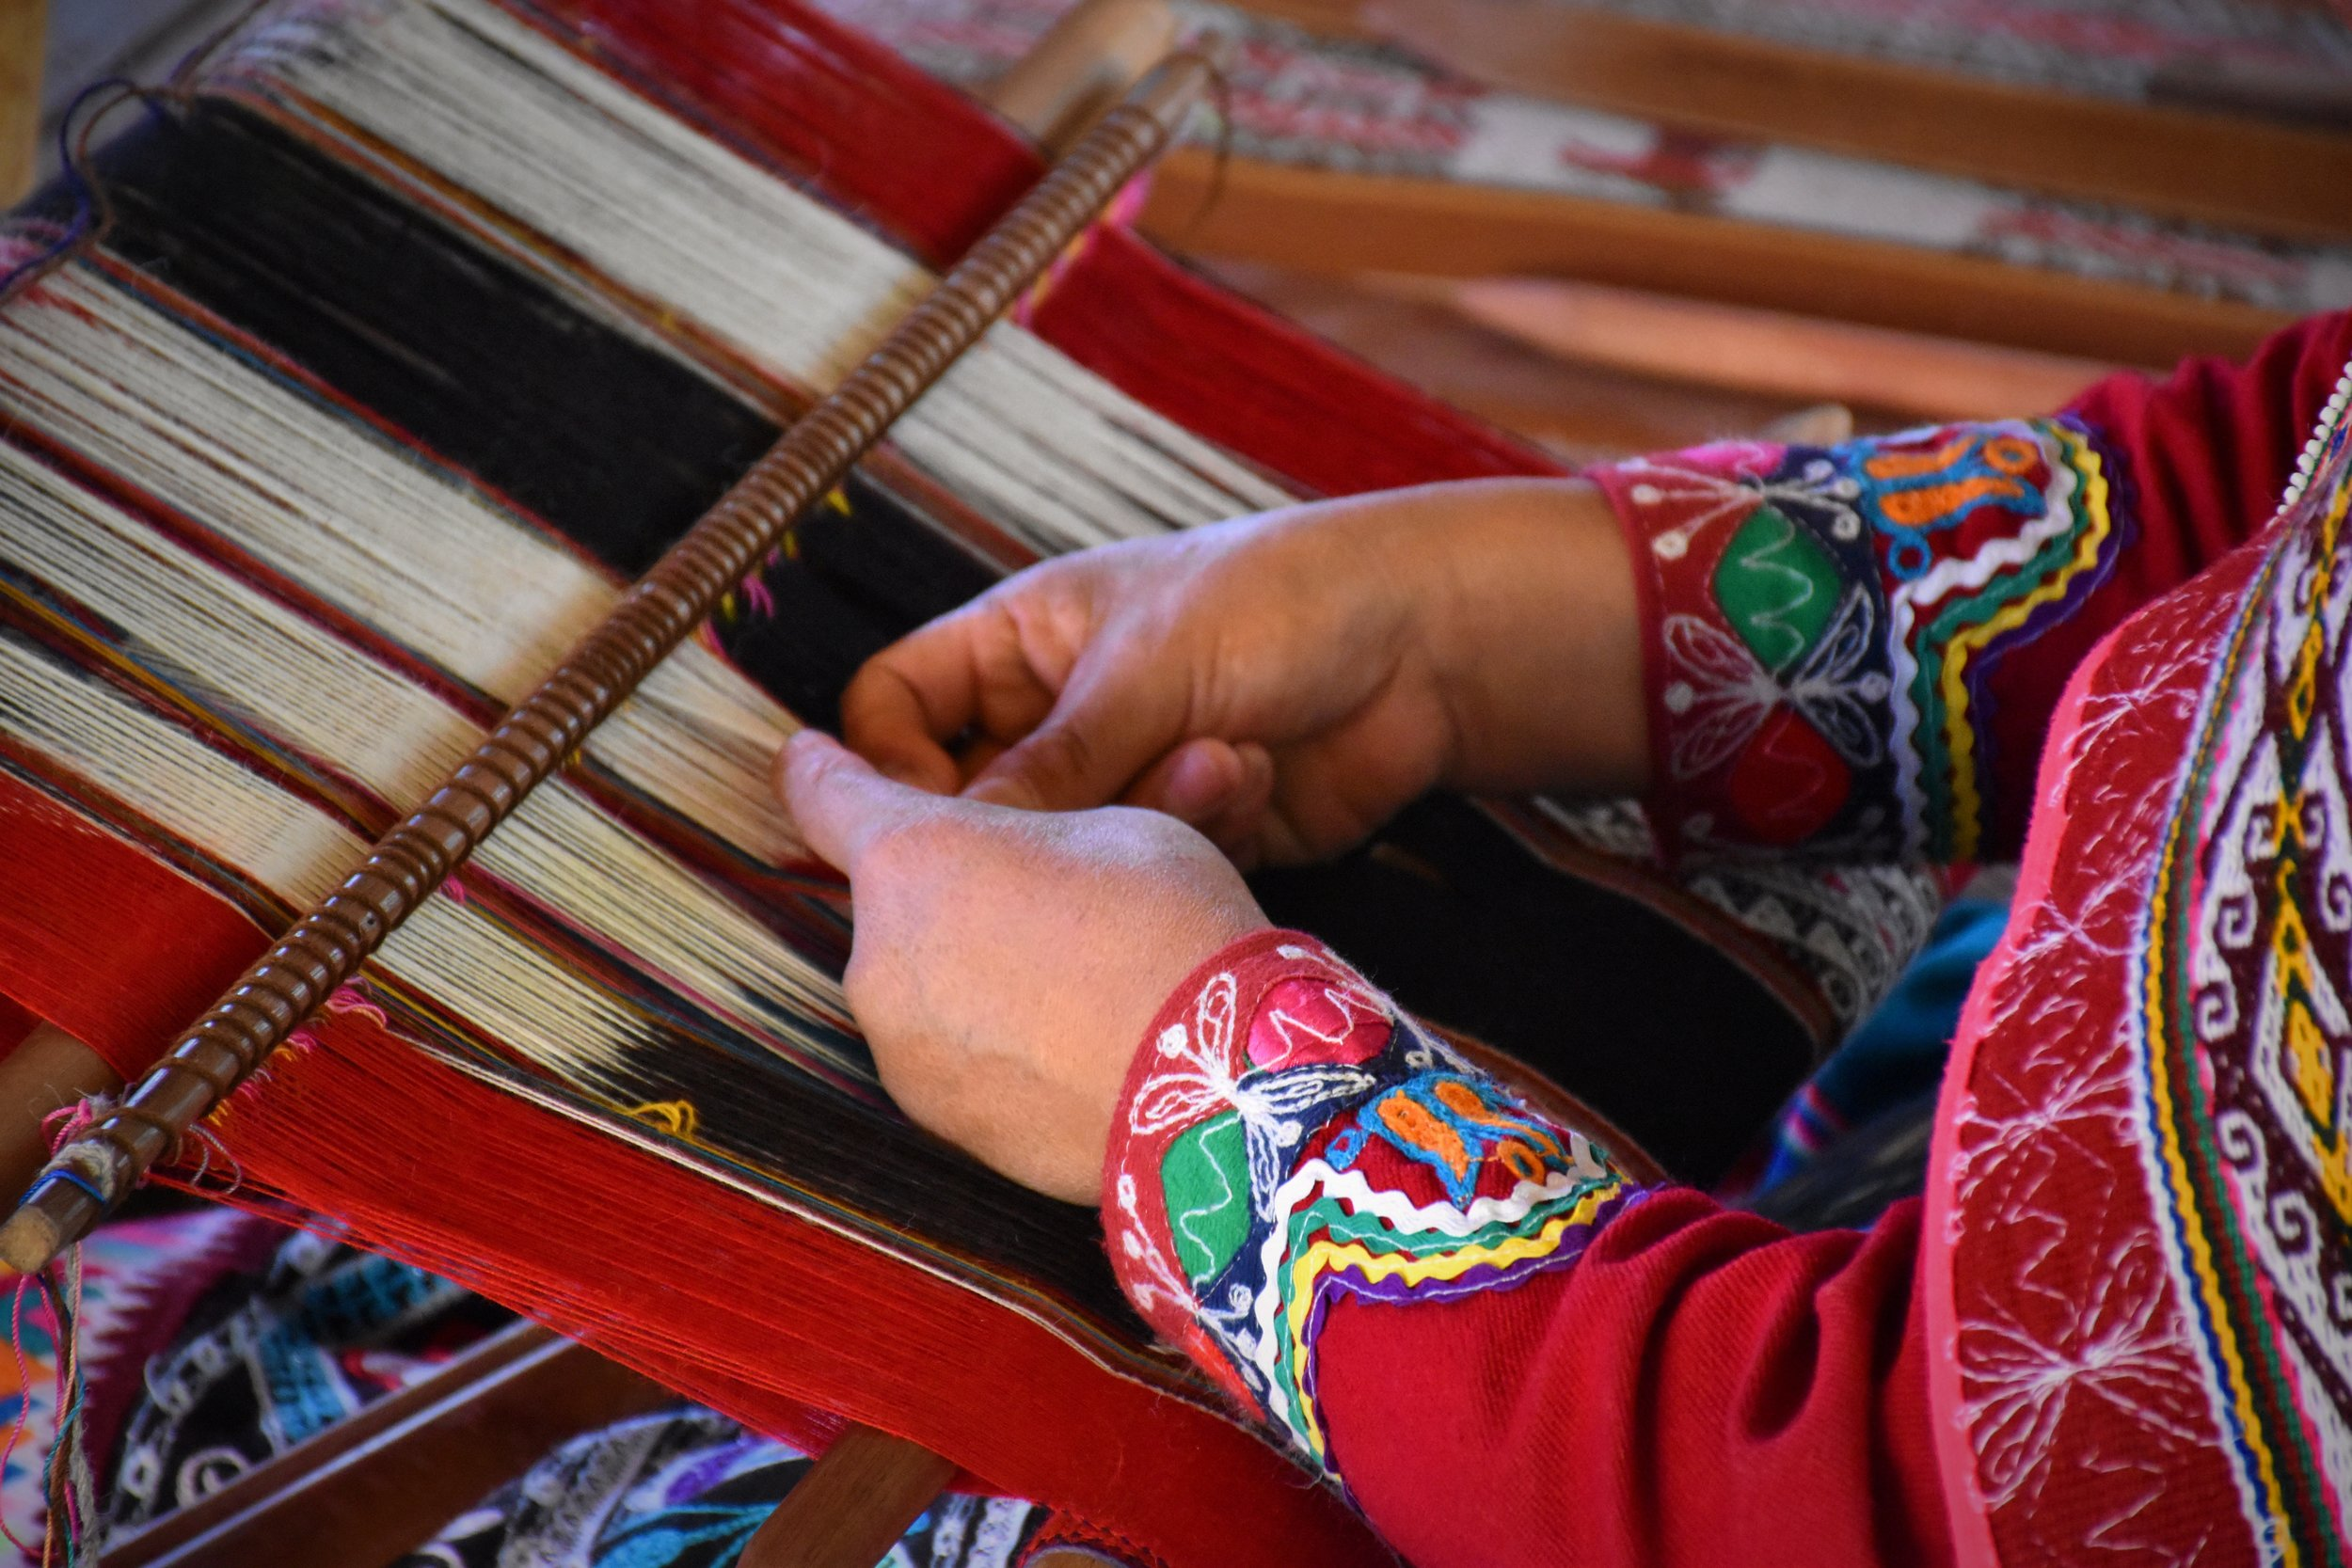 The timeless beauty of weaving a tapestry is the same in our own lives and development.